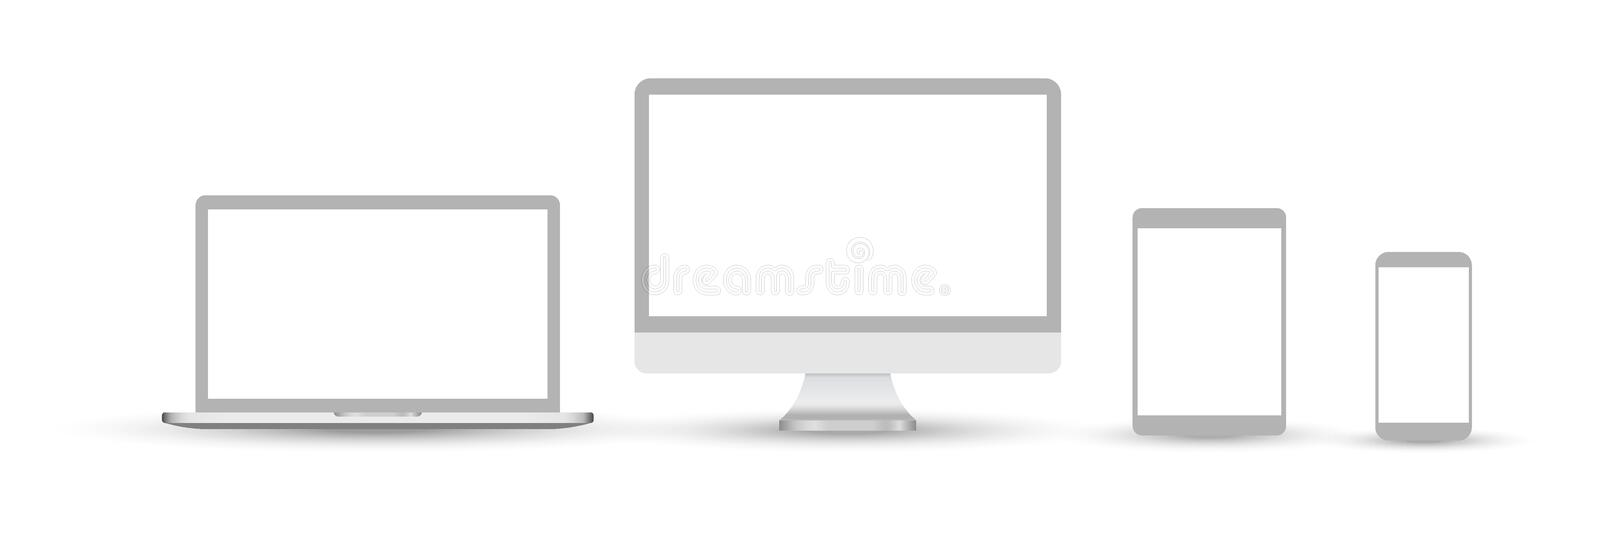 Set of devices icons. Set of devices icons. Devices isolated on white background. Icons: computer screen, laptop, tablet pc,. Smartphone, electronic book royalty free illustration